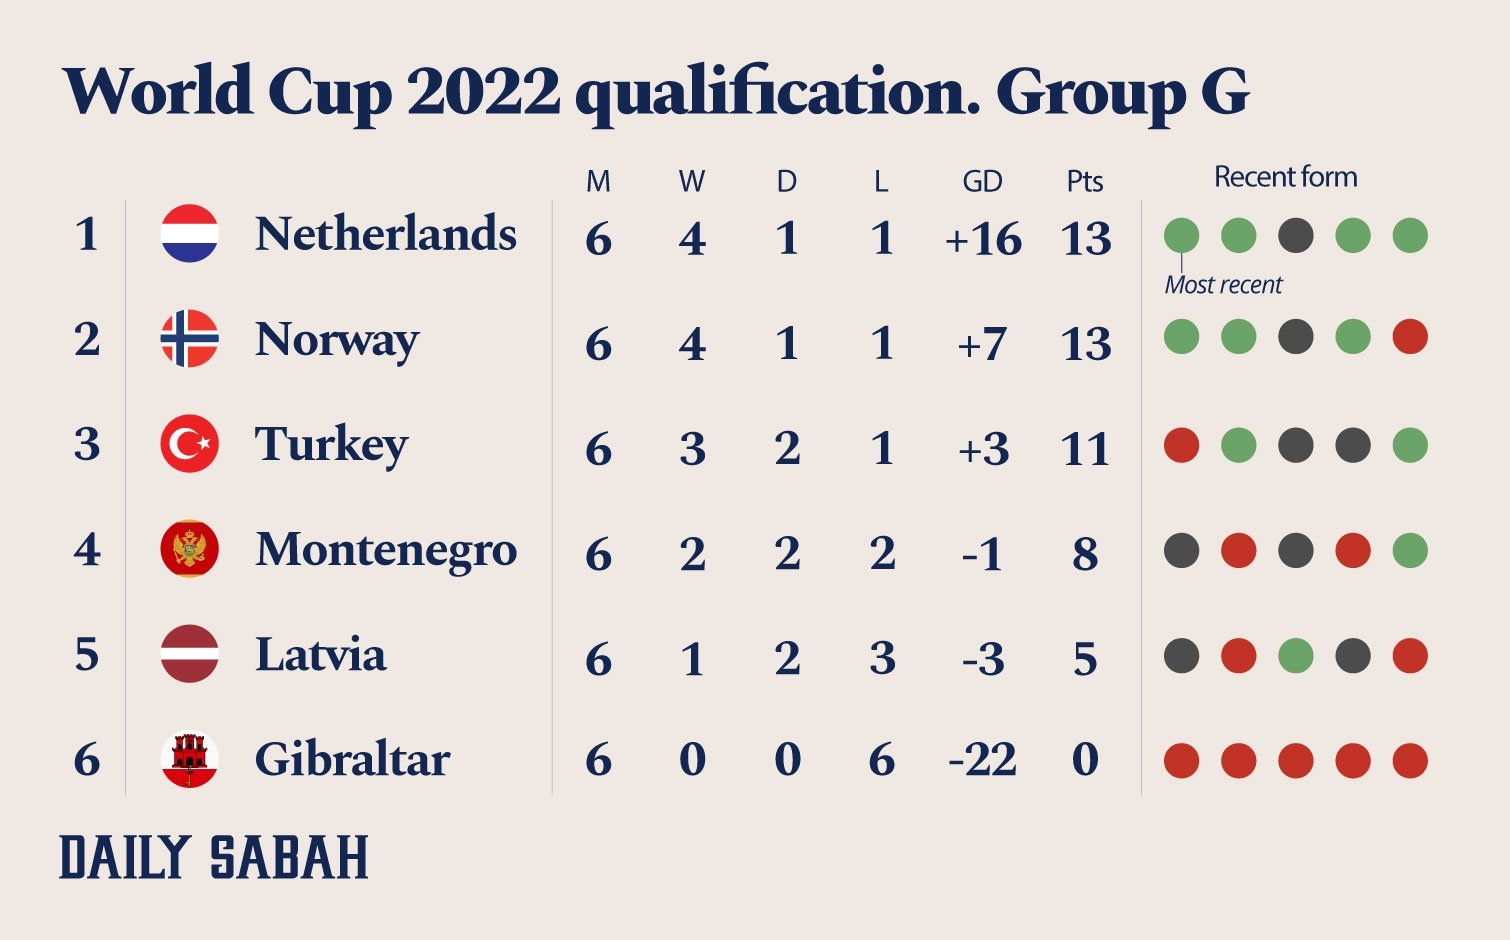 The current standings in Group G of the European qualification for the 2022 FIFA World Cup.